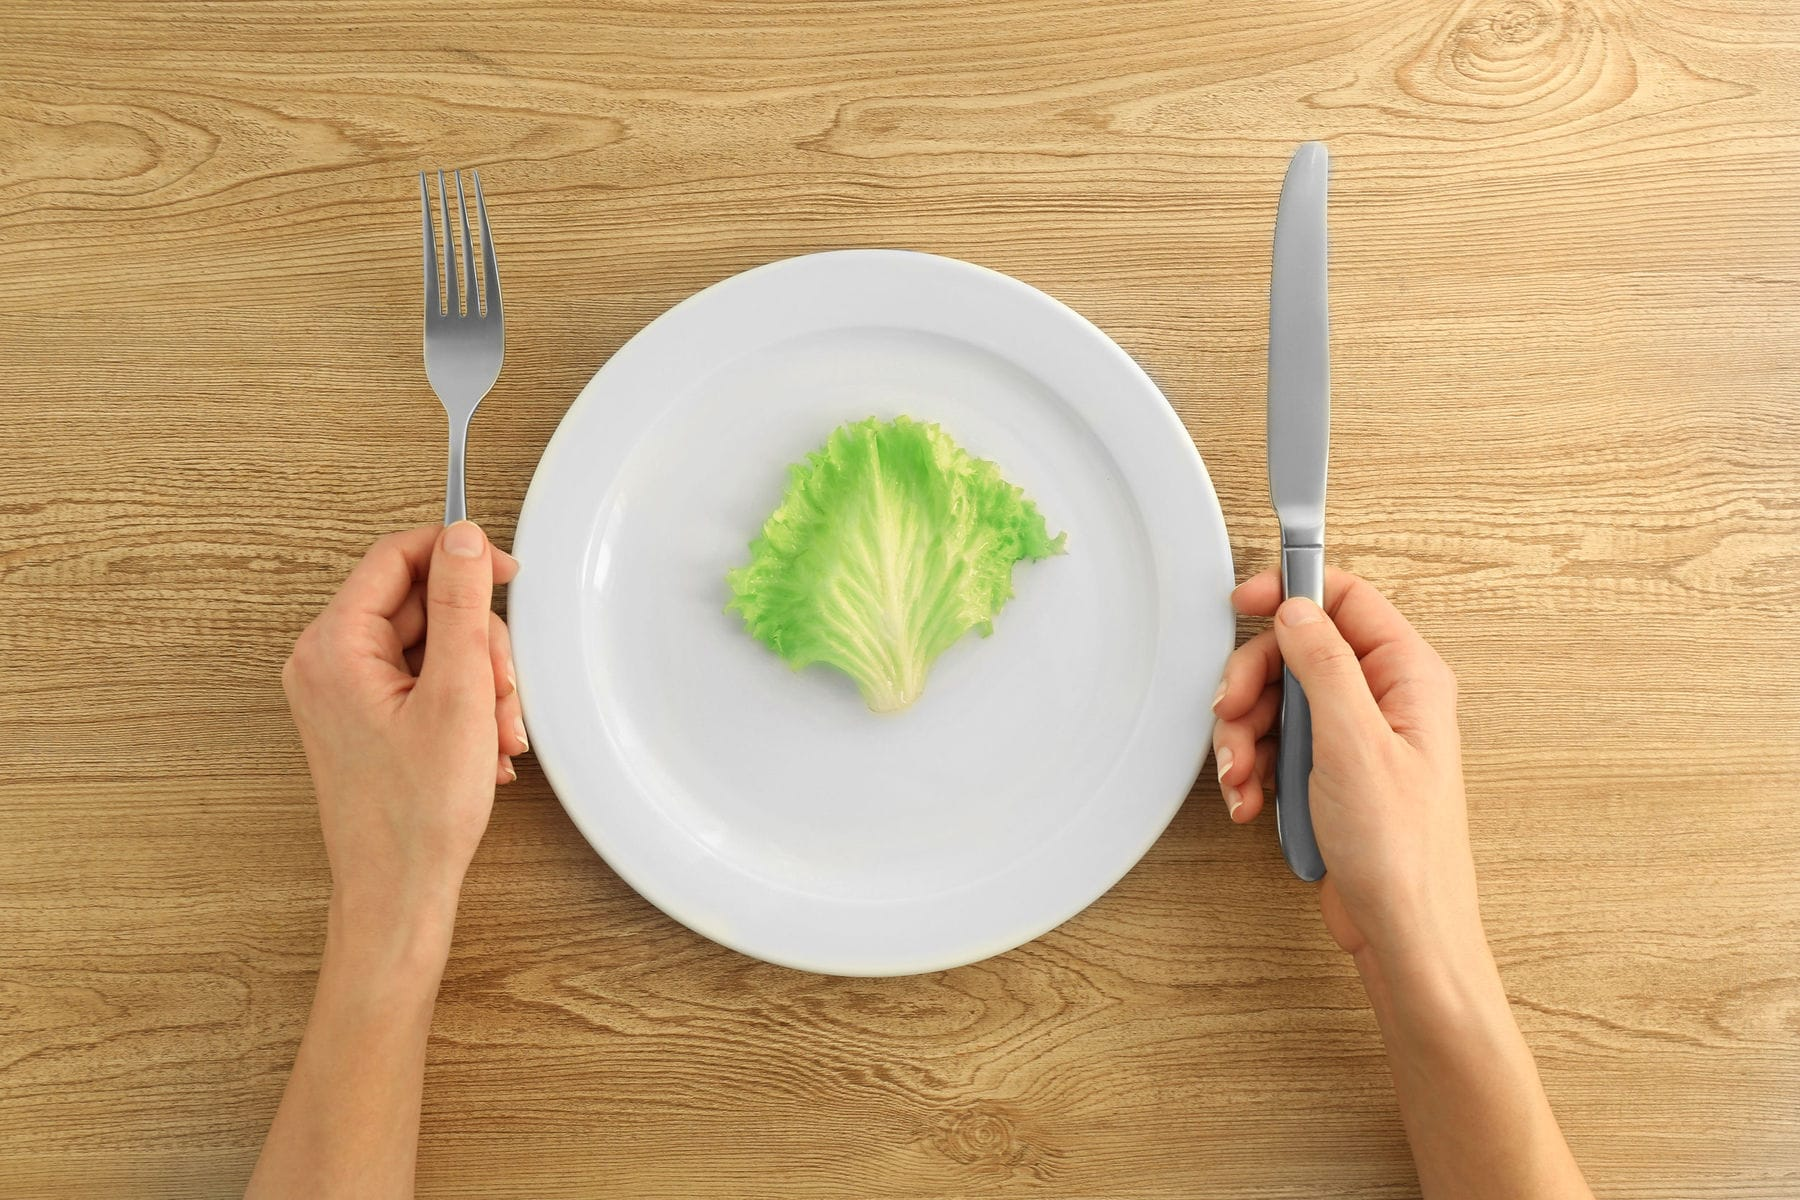 Person with eating disorder eating